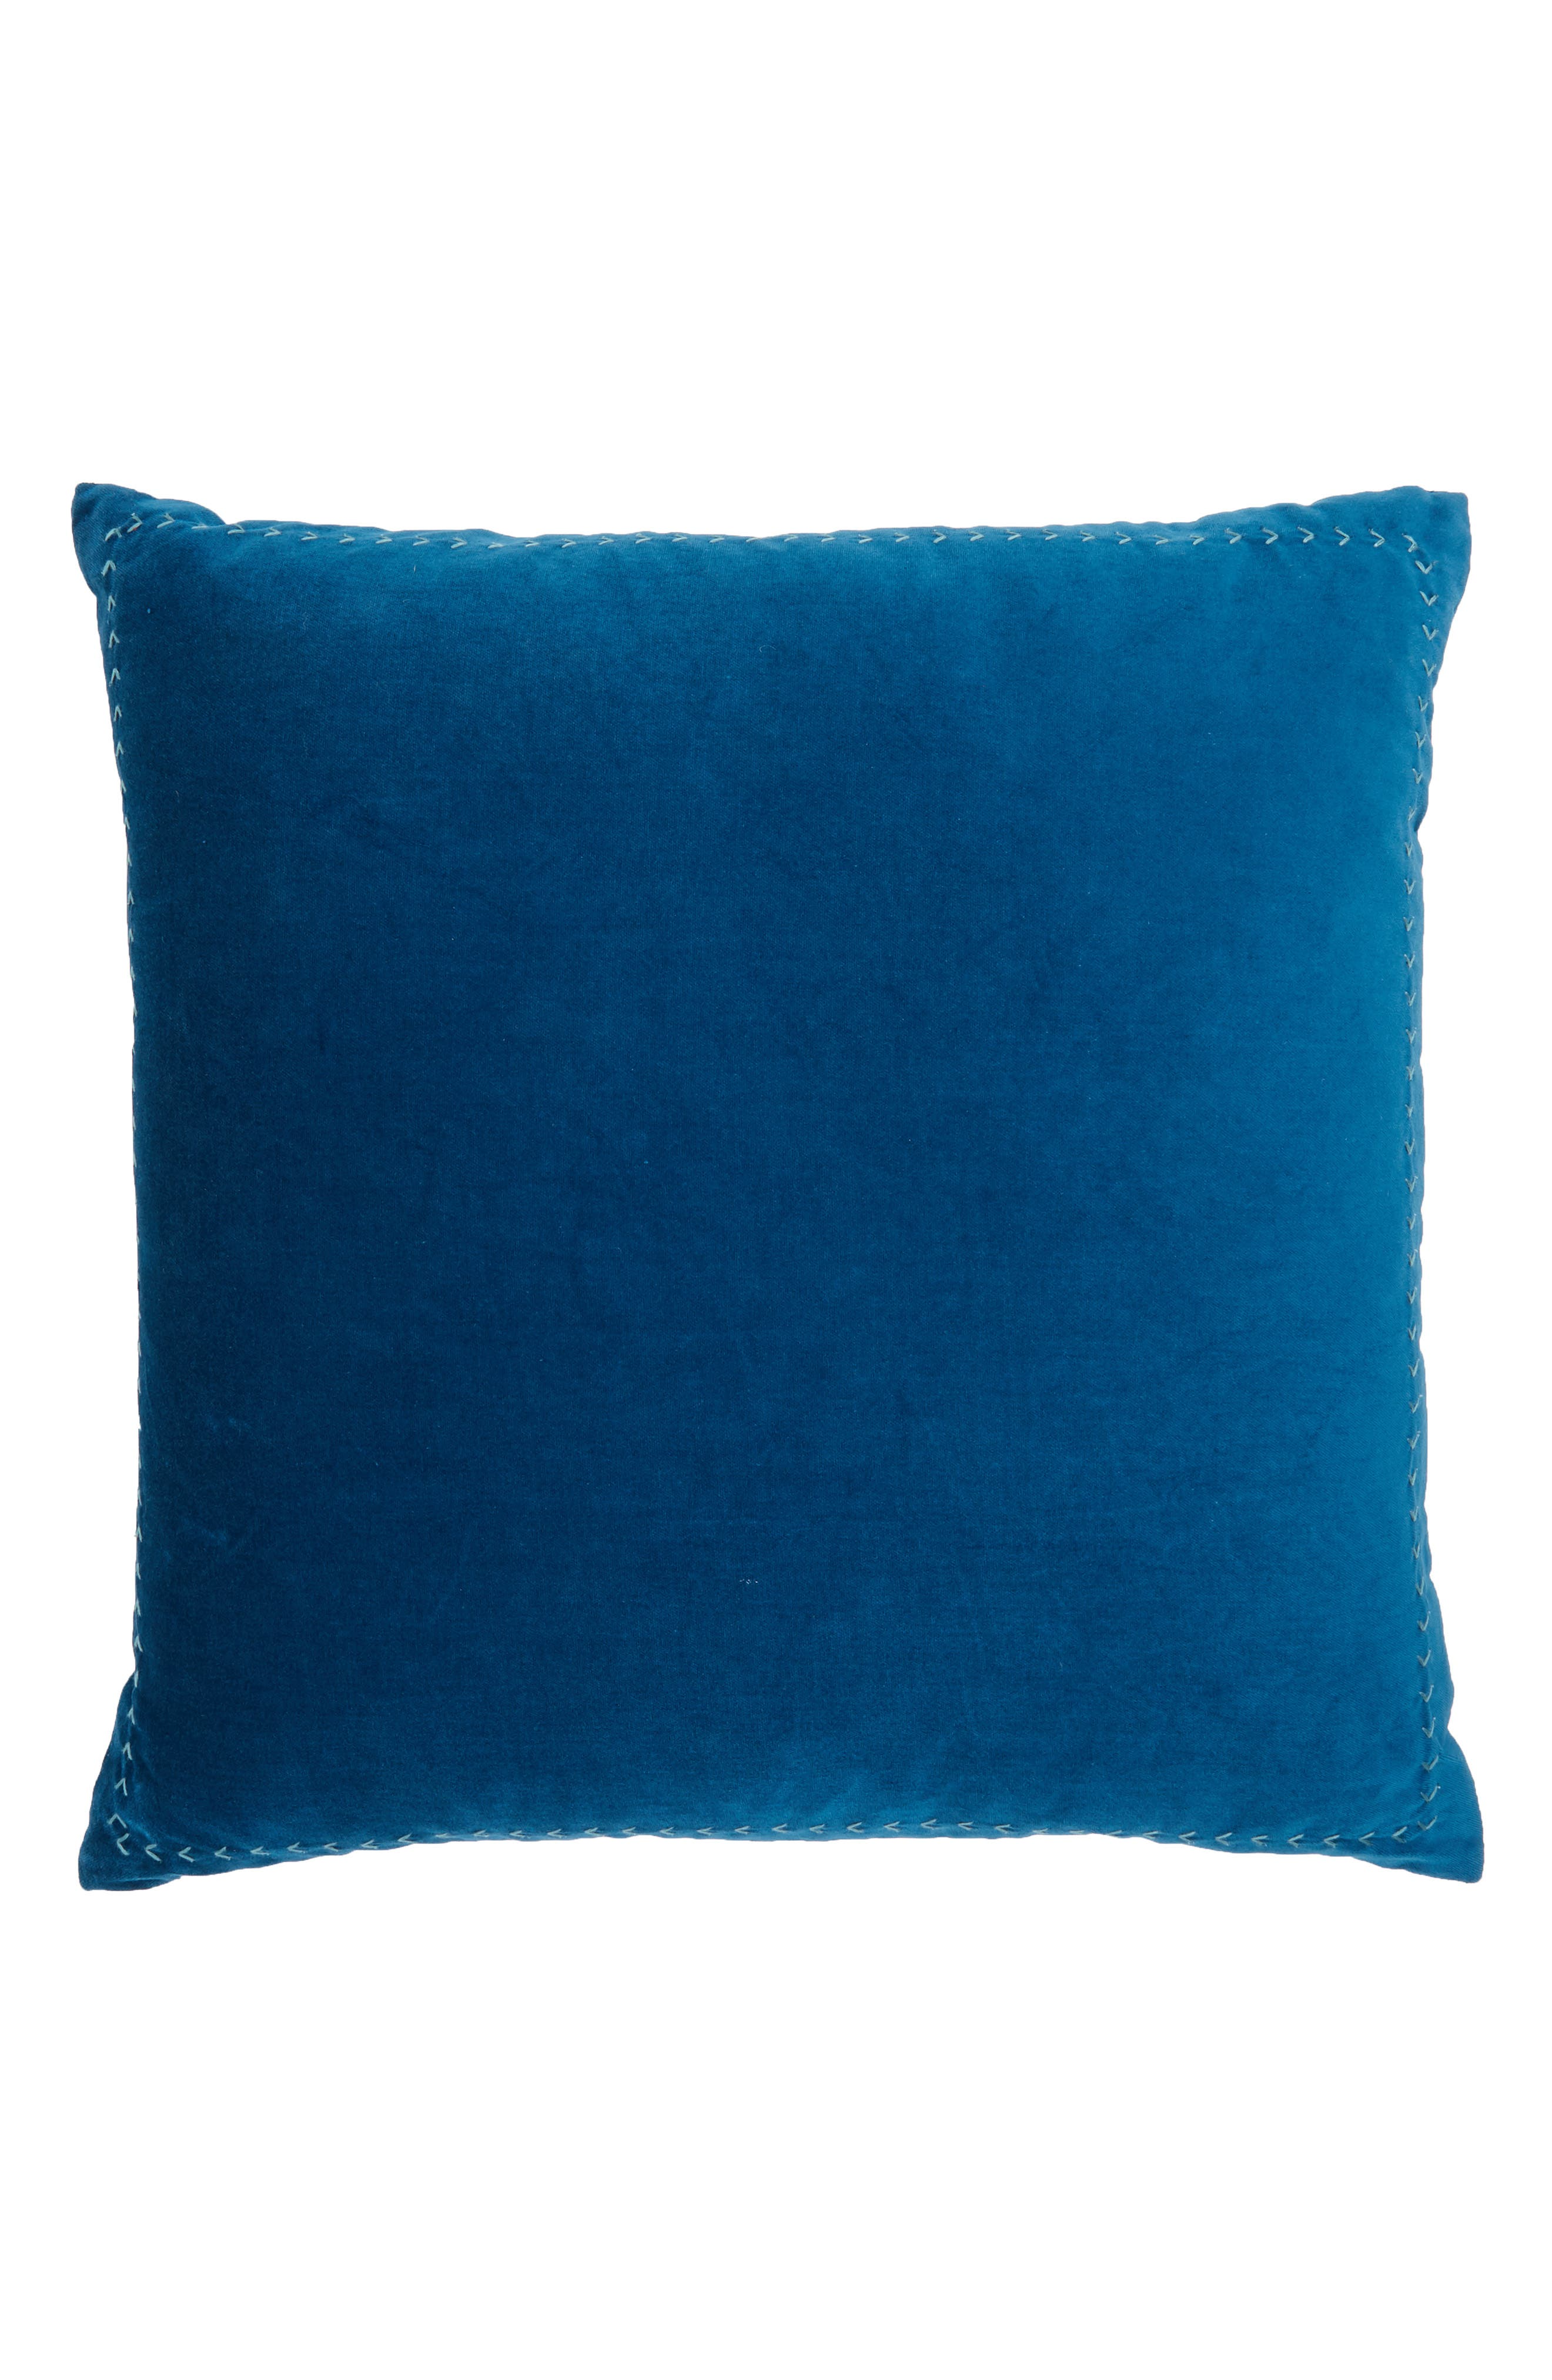 Velvet Accent Pillow,                         Main,                         color,